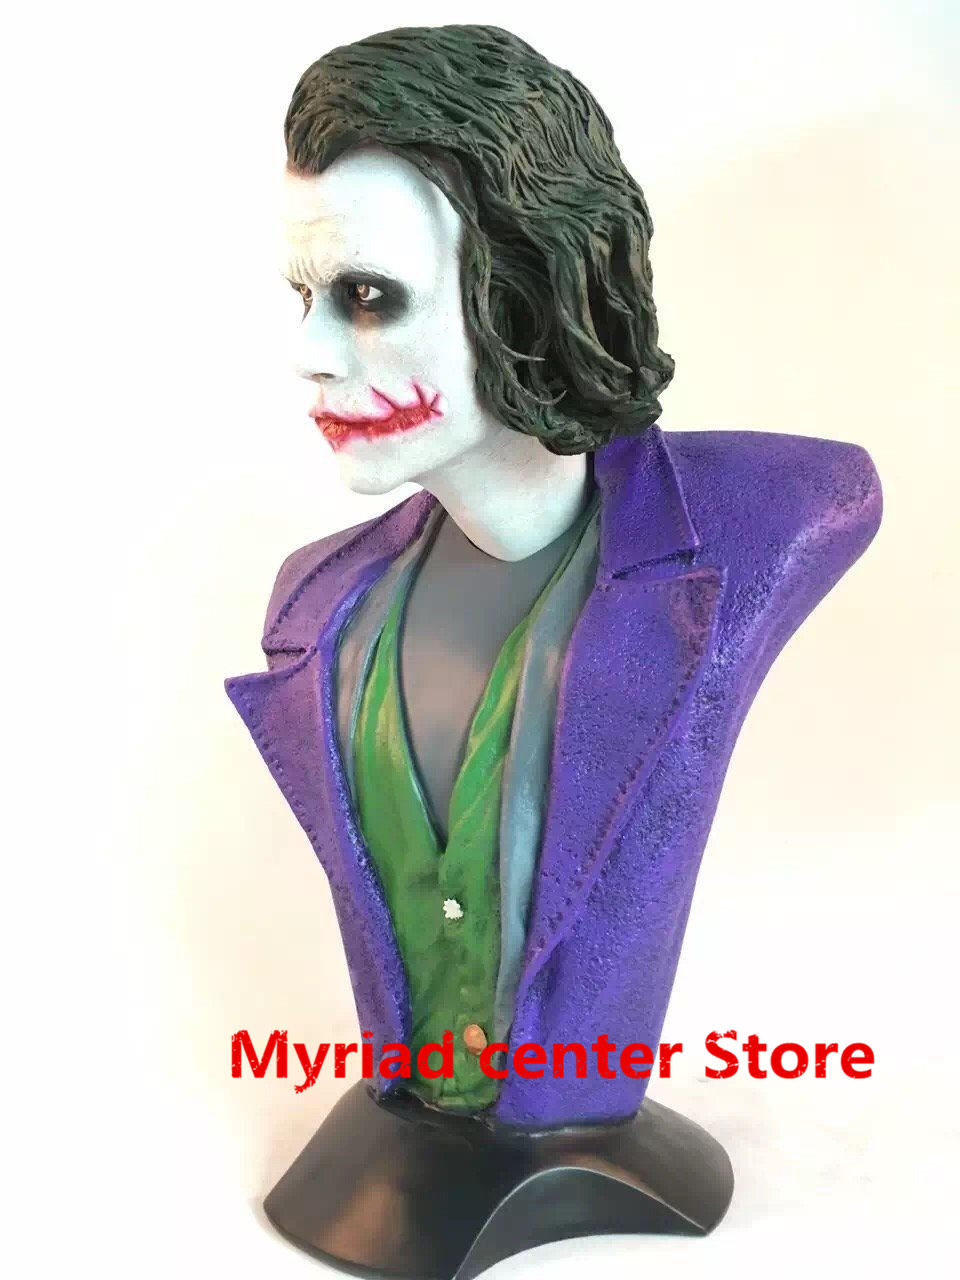 Statue Avengers Batman: The Dark Knight 1:1 Bust Joker (LIFE SIZE)Half-Length Photo Or Portrait Resin Head portrait Model Avatar statue avengers captain america 3 civil war iron man tony stark 1 2 bust mk33 half length photo or portrait with led light w216